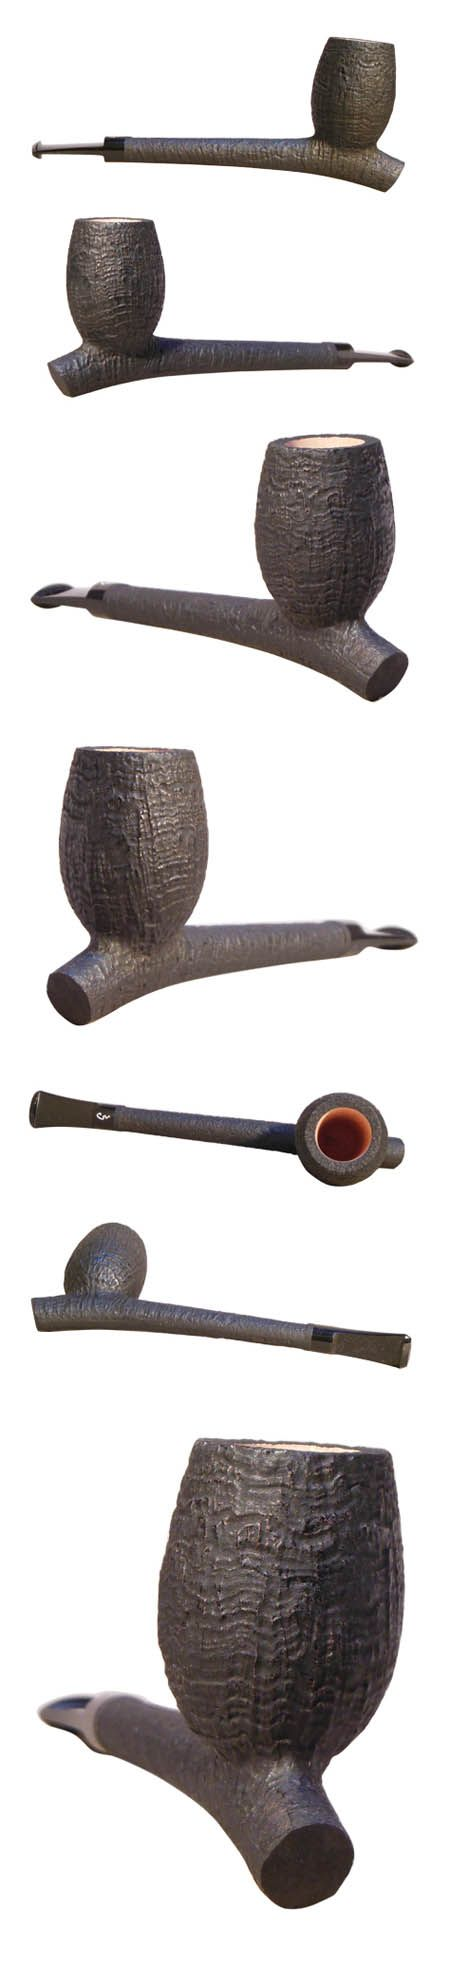 1060 best Pipes / Tobacco images on Pinterest | Pipe smoking ...